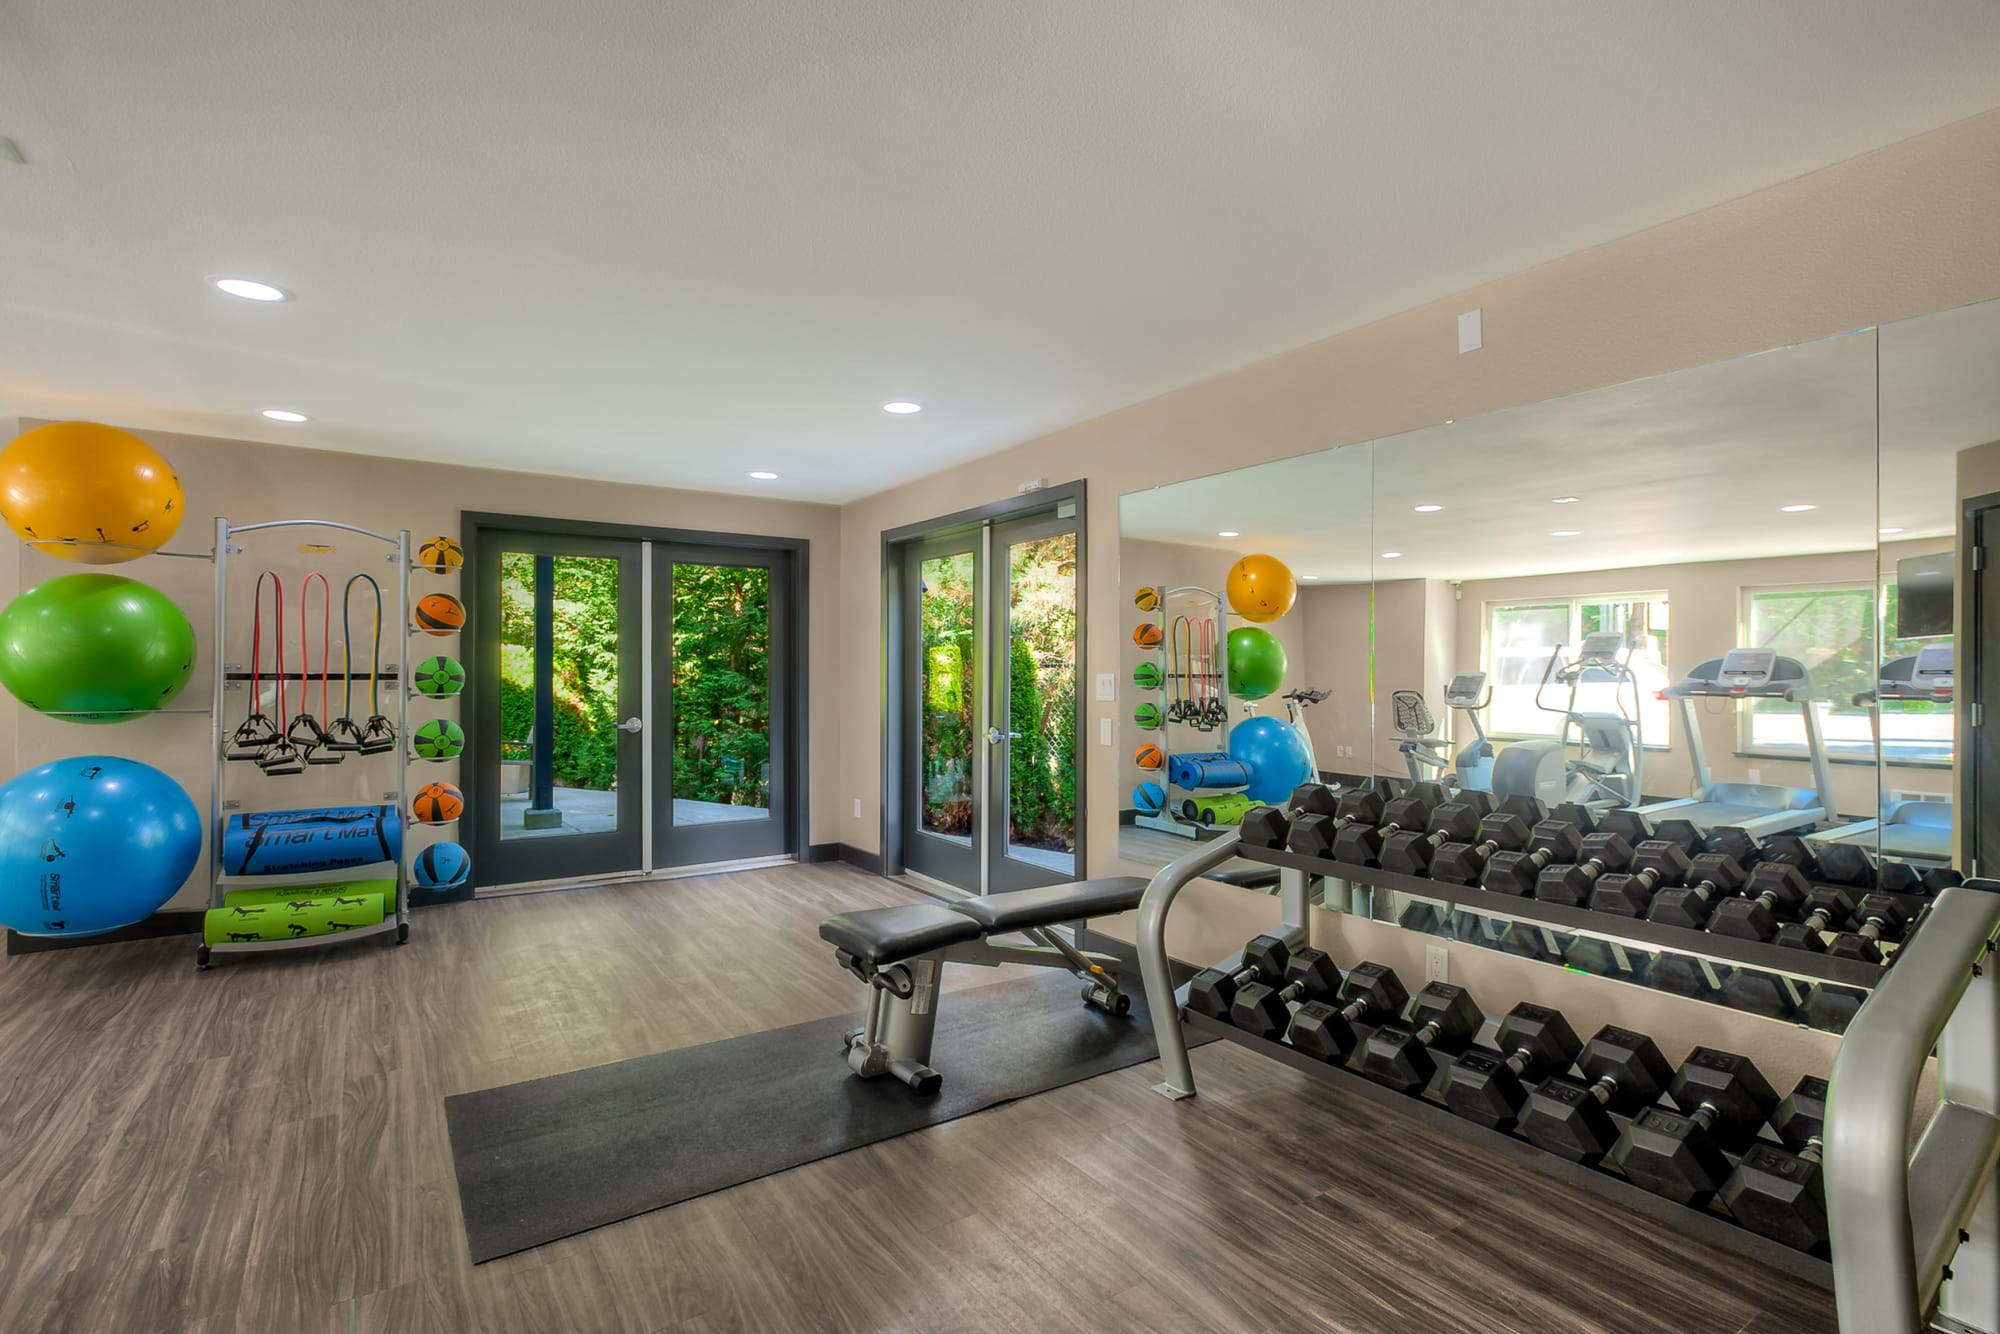 newly renovated Fitness center, free weights at Karbon Apartments in Newcastle